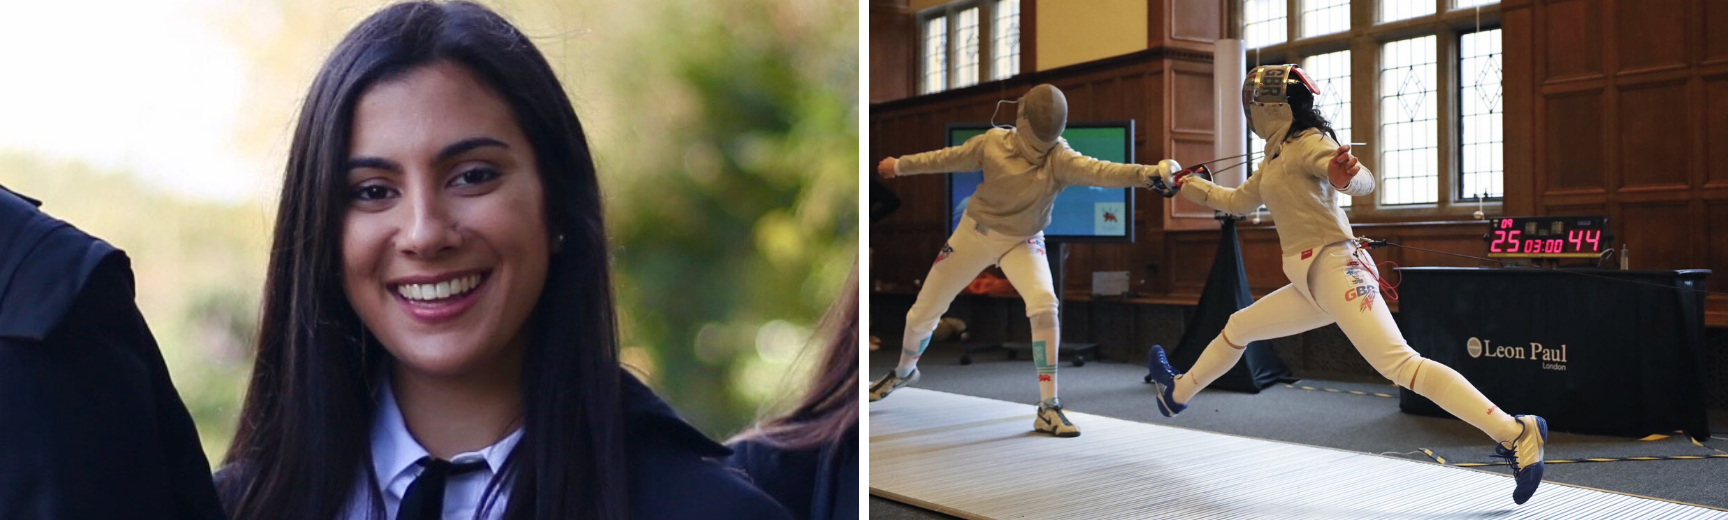 An image of Aliya in academic wear and an image and Aliya fencing